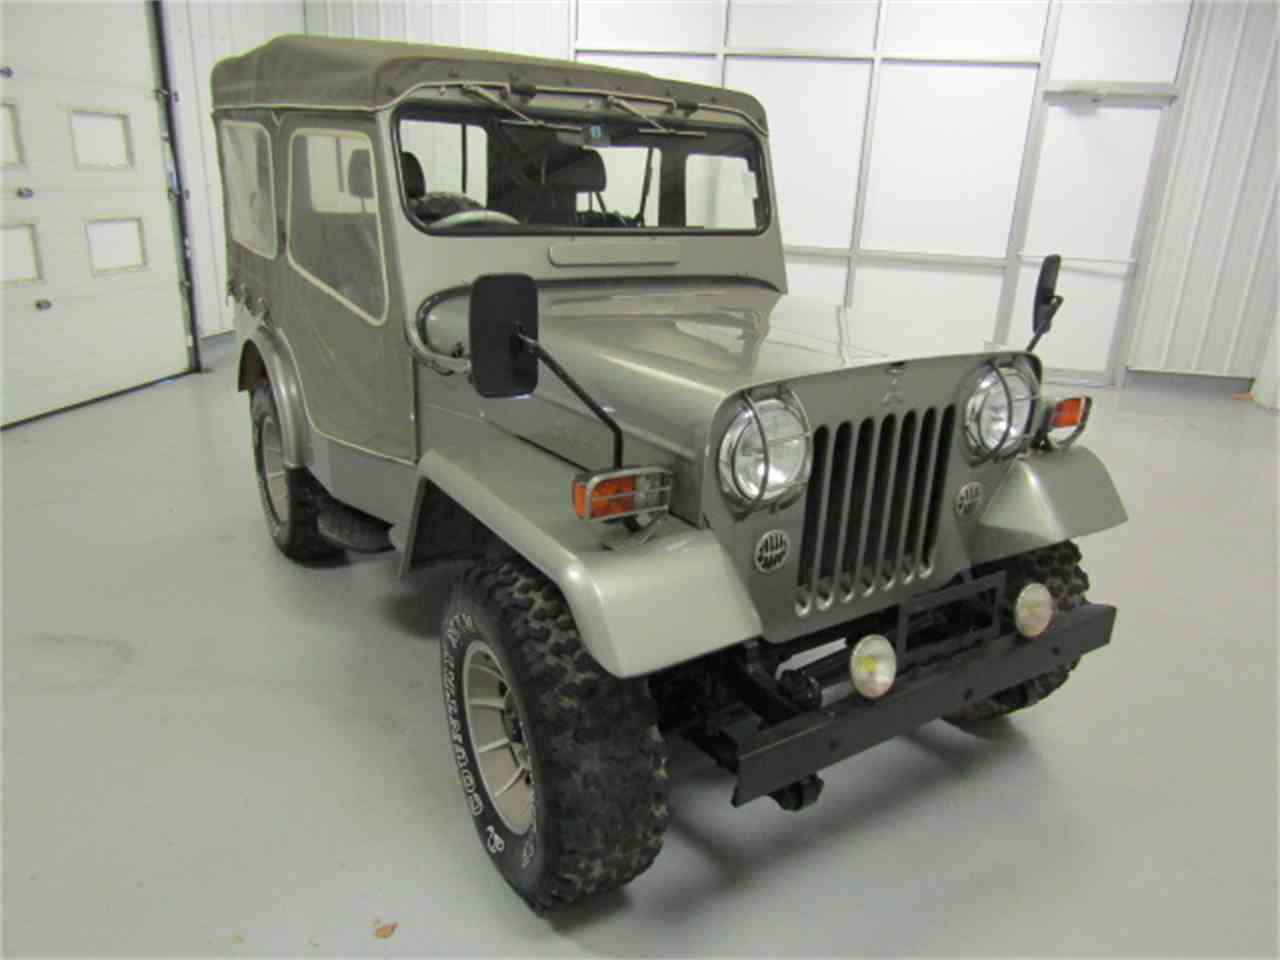 Large Picture of 1979 Jeep - $10,999.00 Offered by Duncan Imports & Classic Cars - JM3M